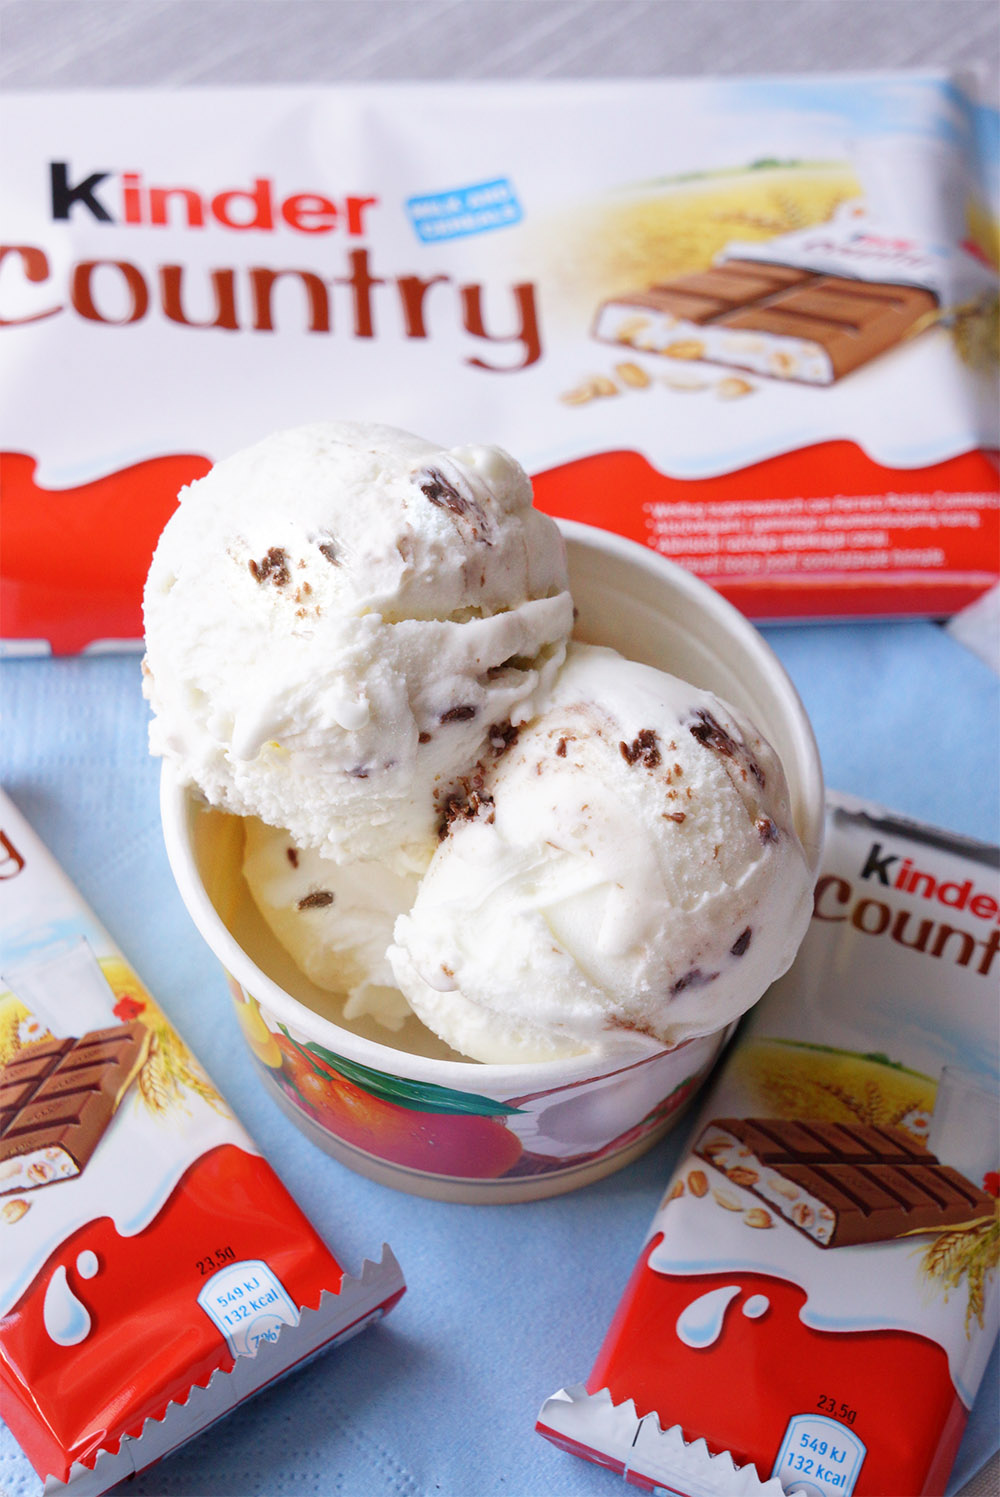 lody kinder country